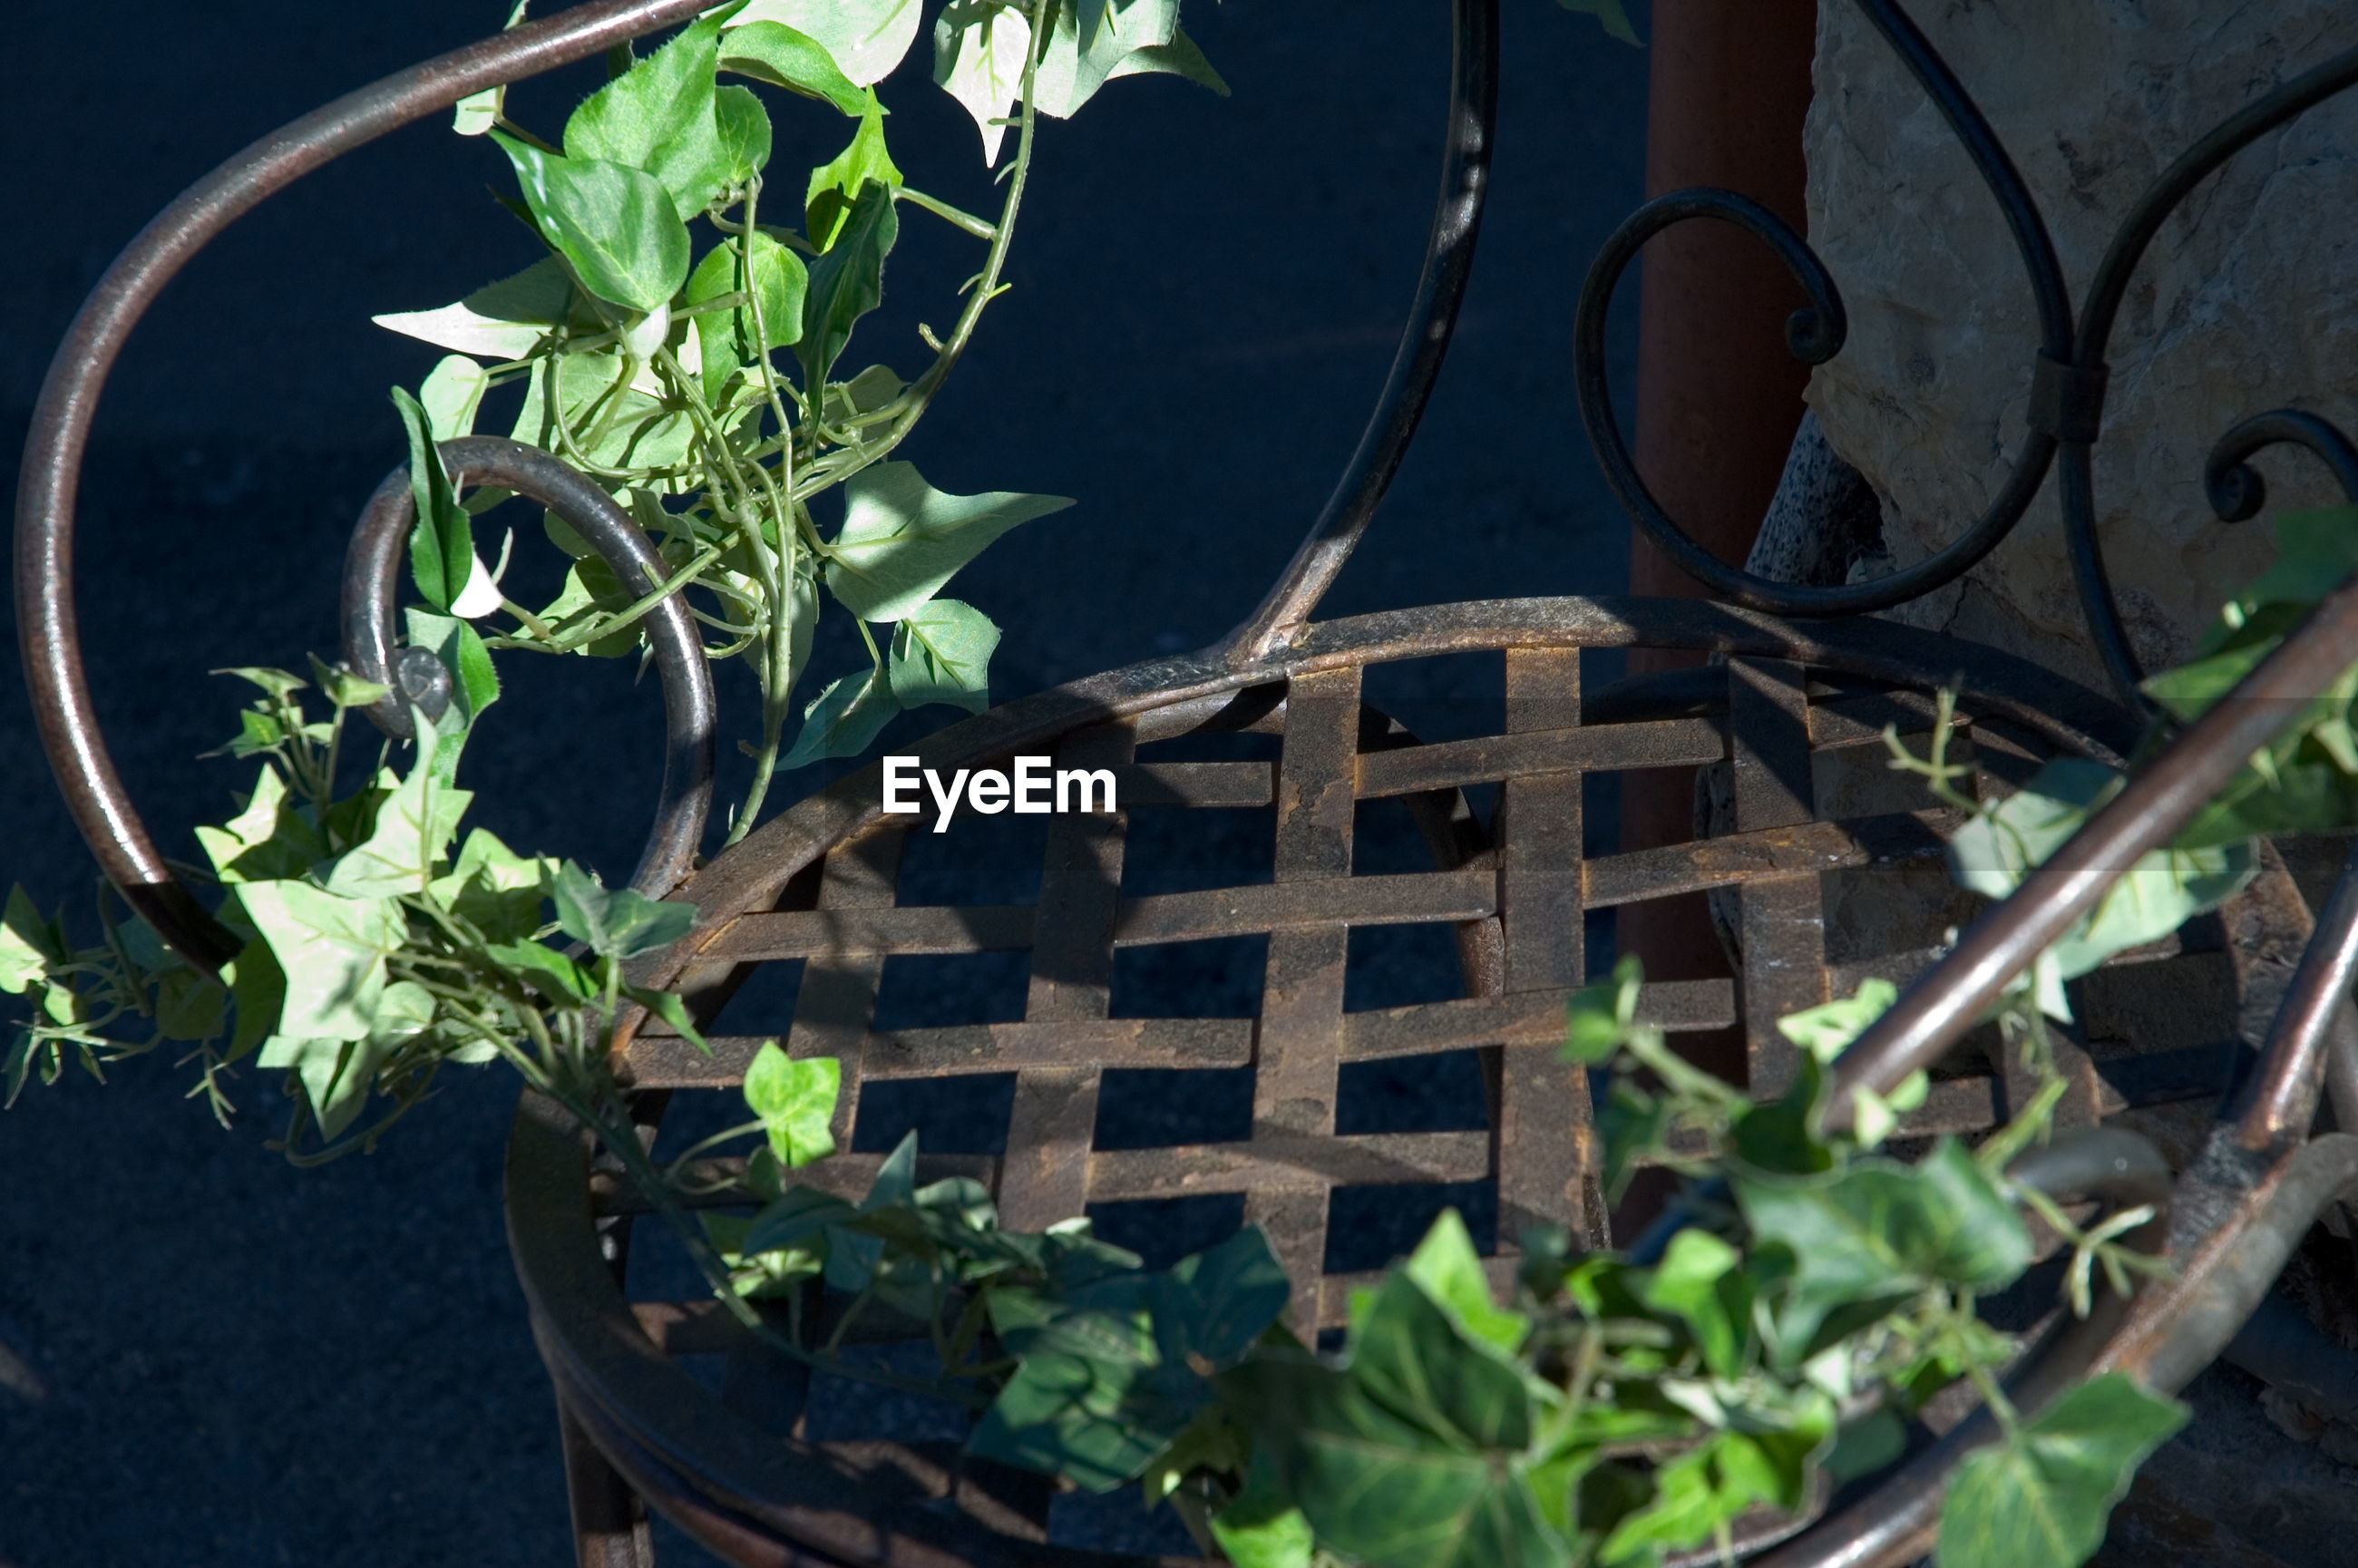 HIGH ANGLE VIEW OF POTTED PLANT ON METAL